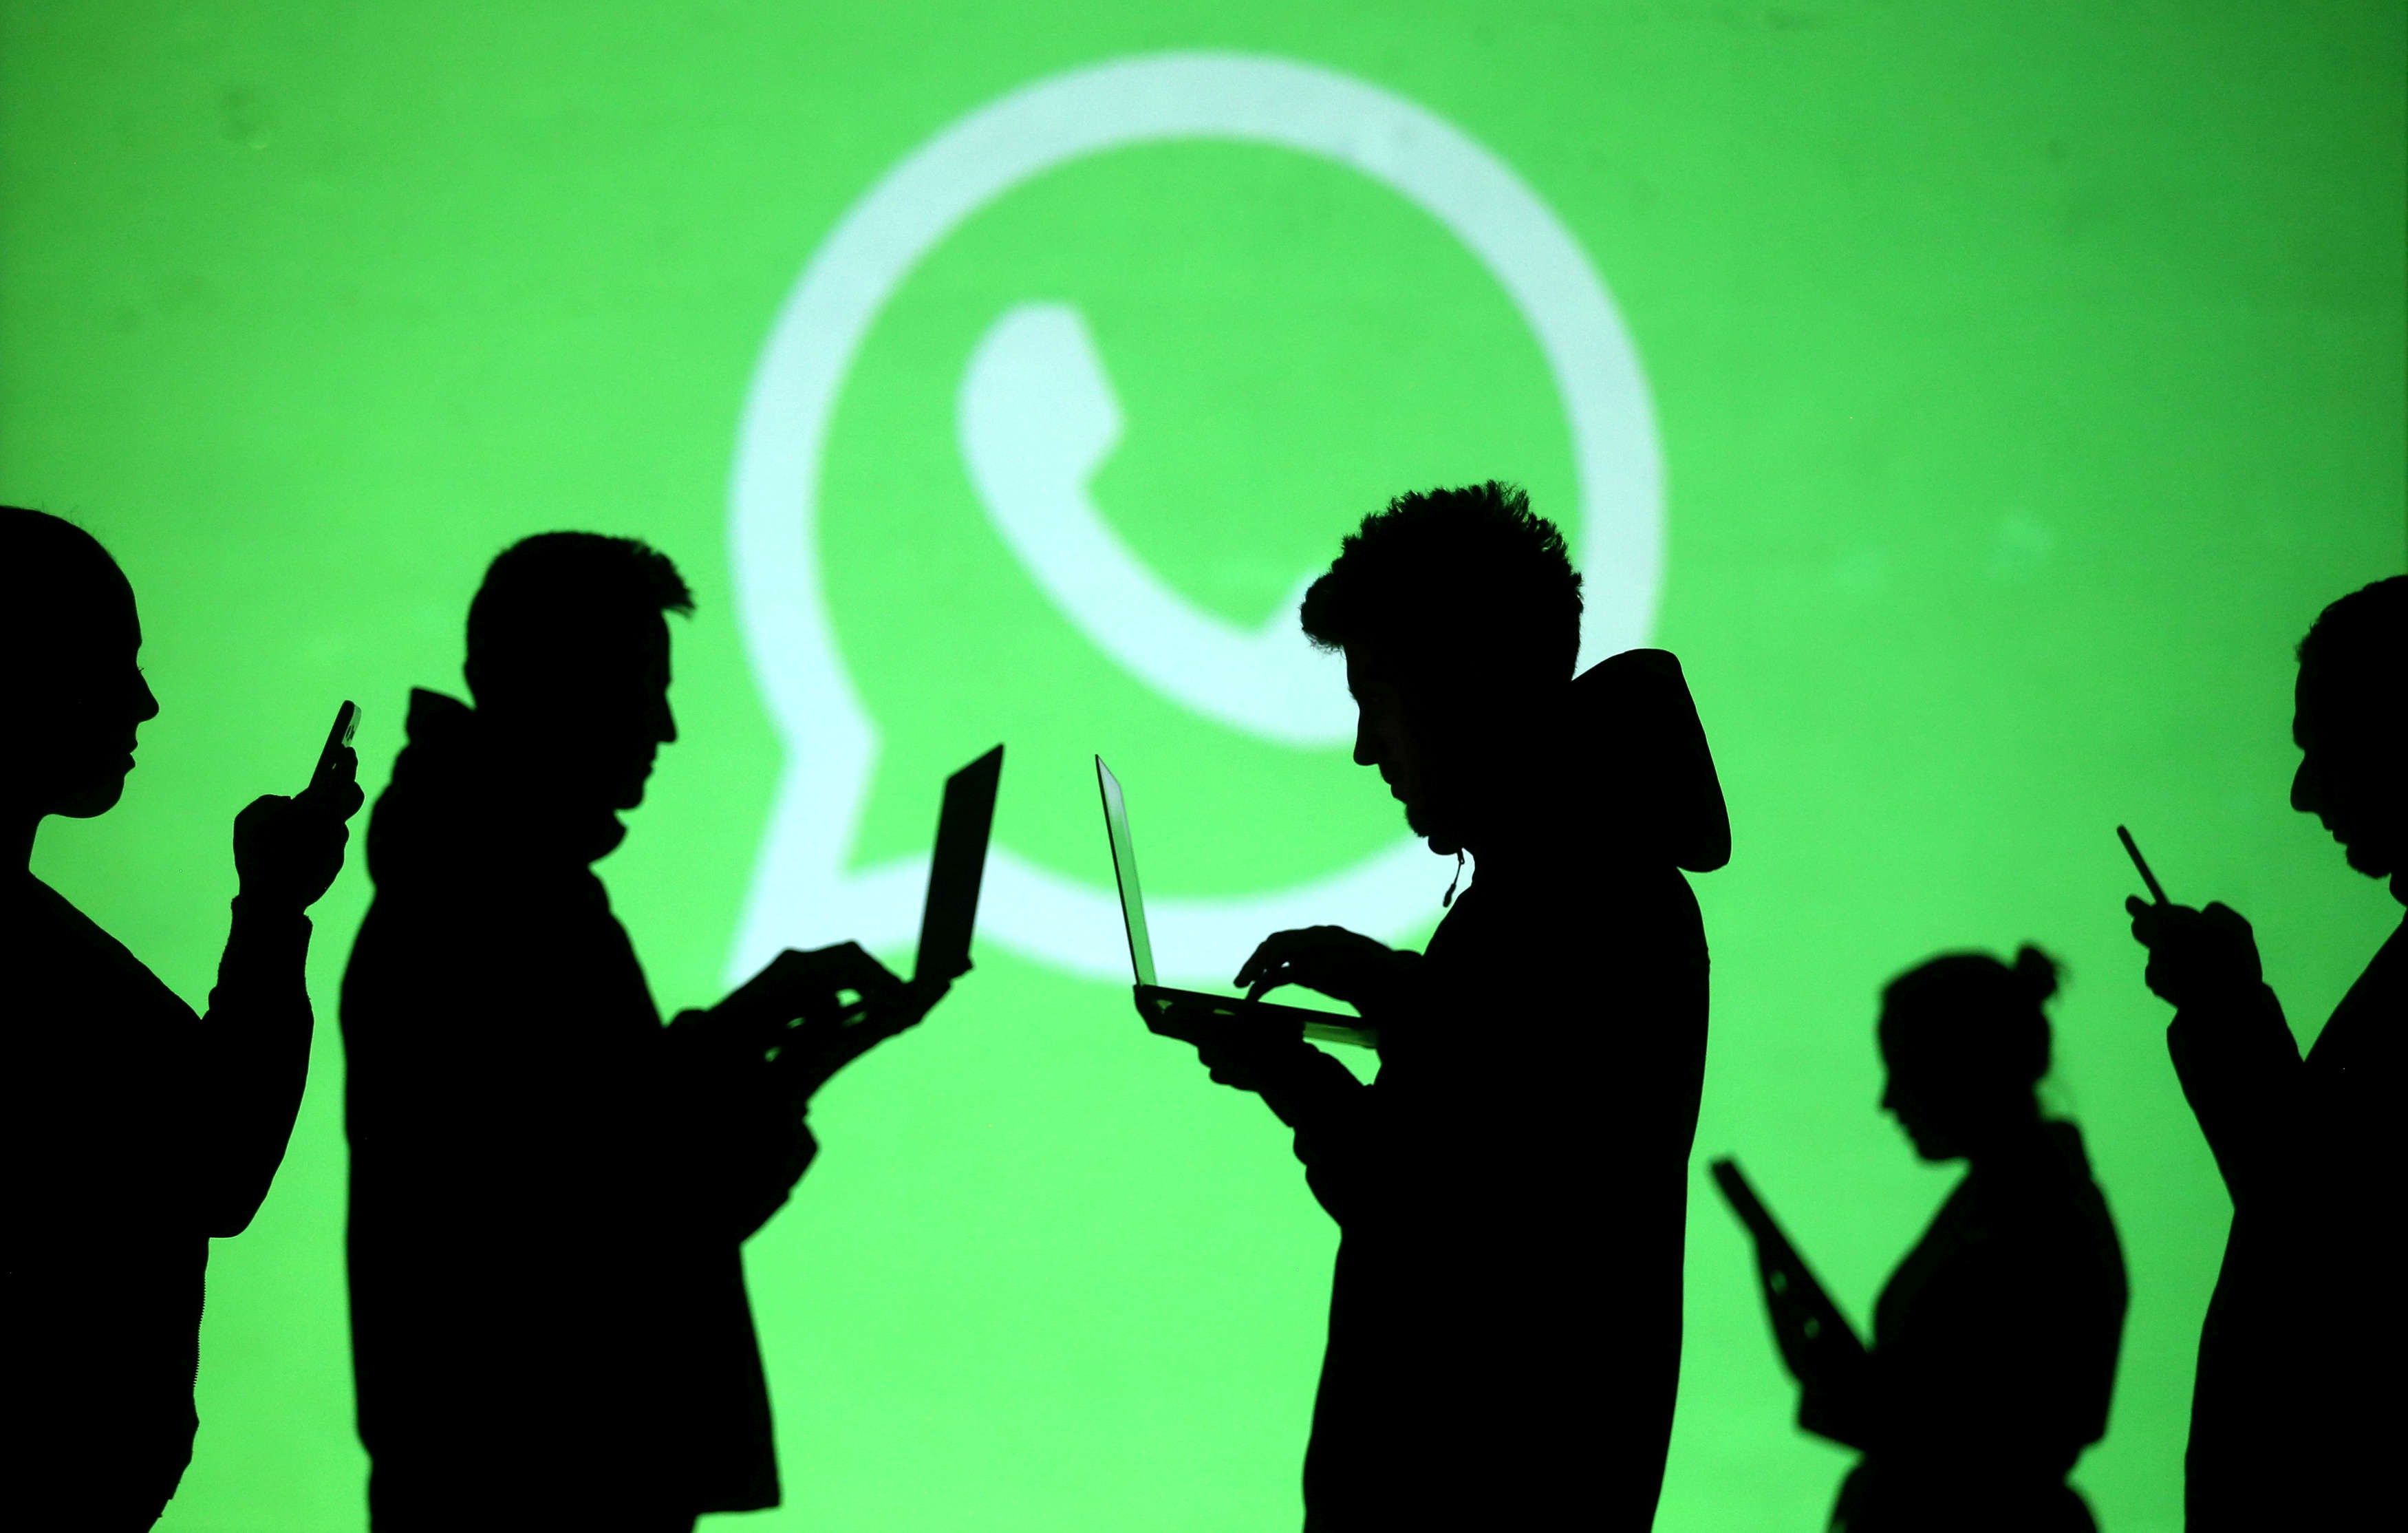 WhatsApp bans two million accounts per month for attempting to send bulk or automated messages. 